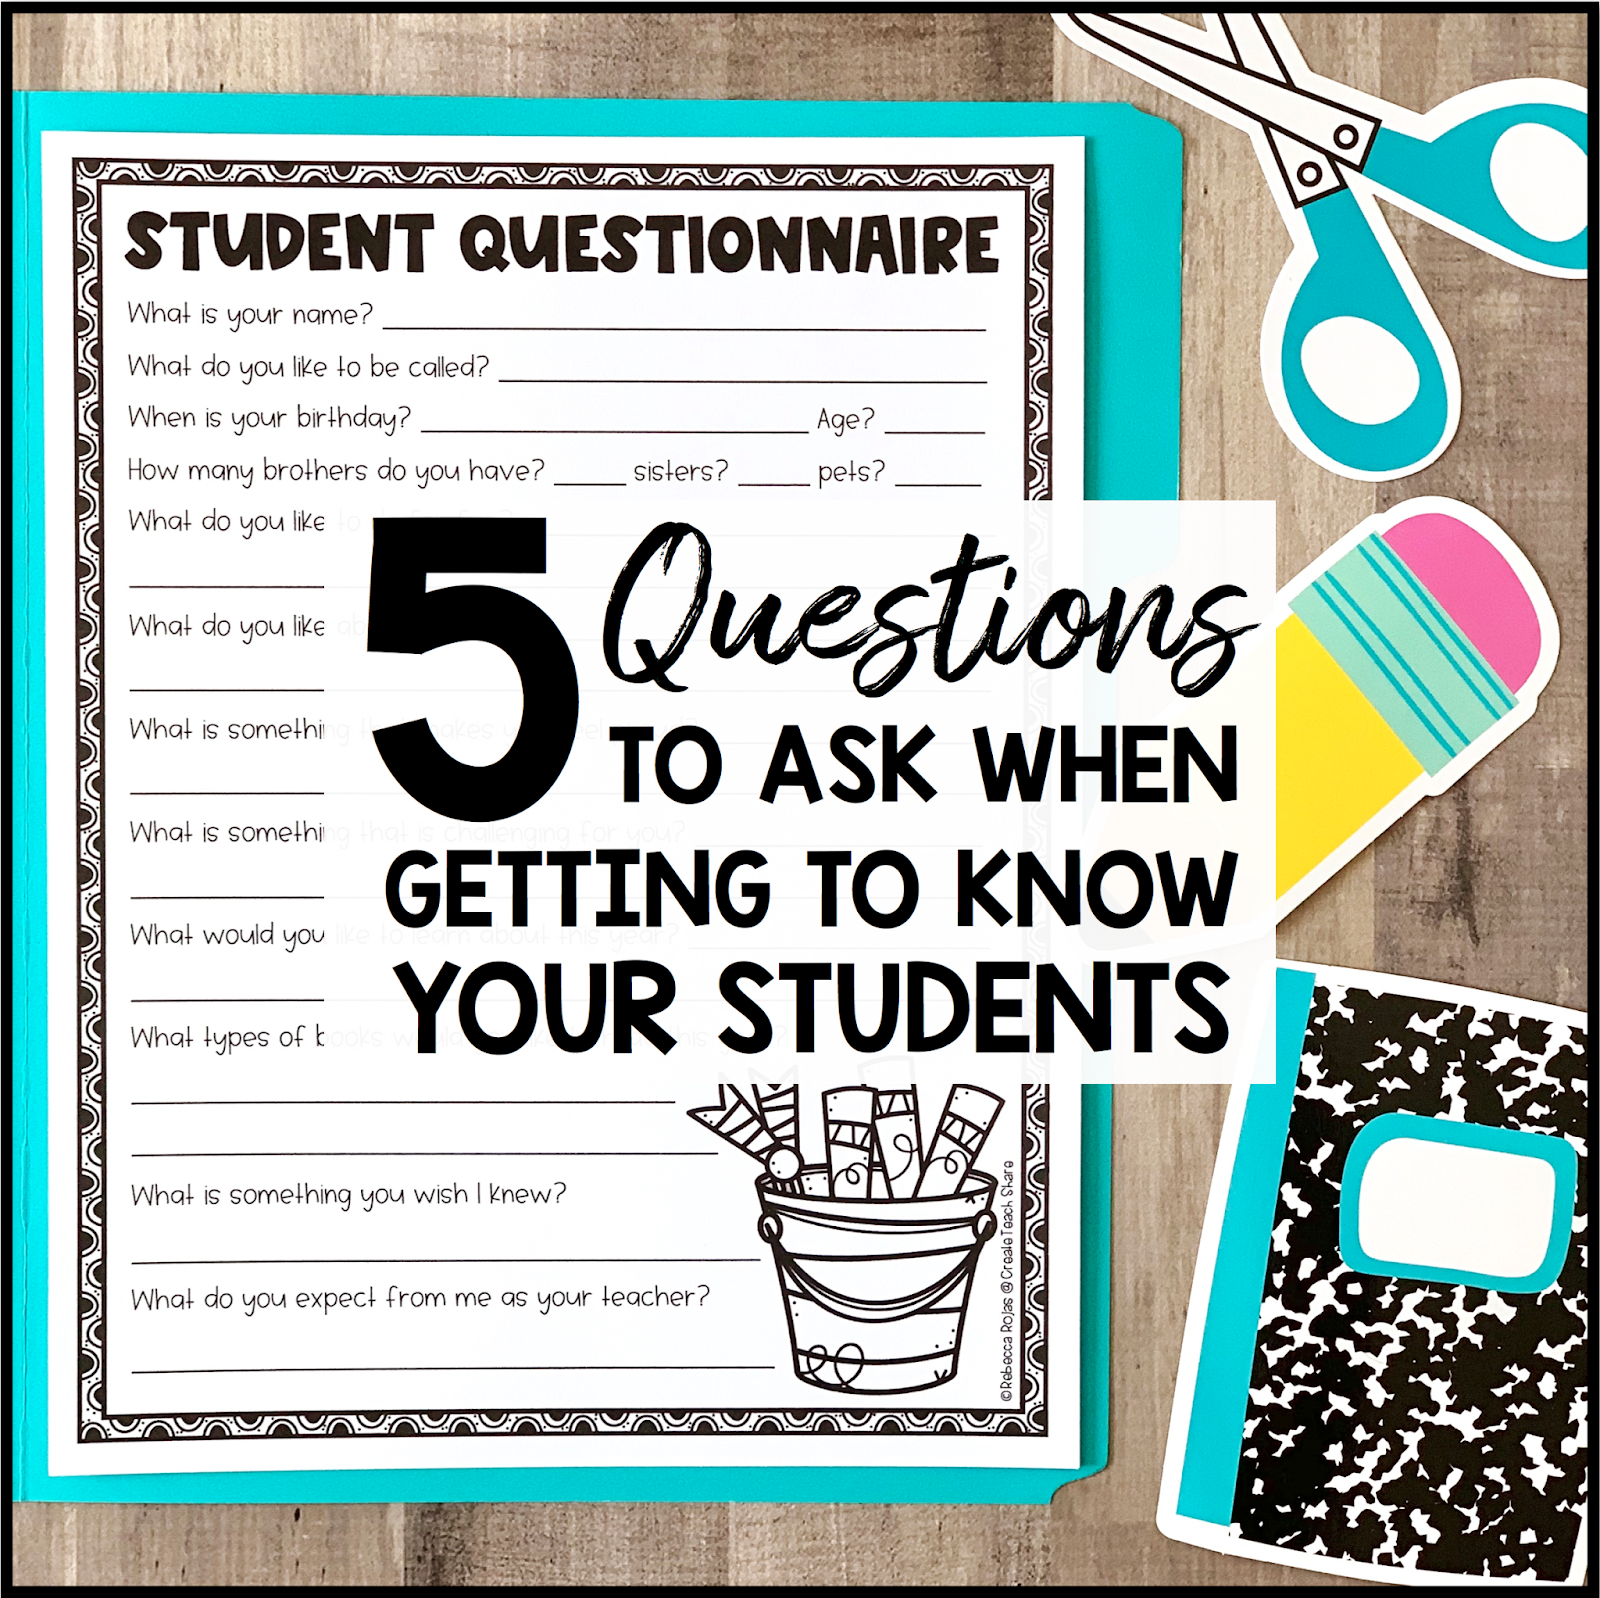 5 Questions to Ask When Getting to Know Your Students.